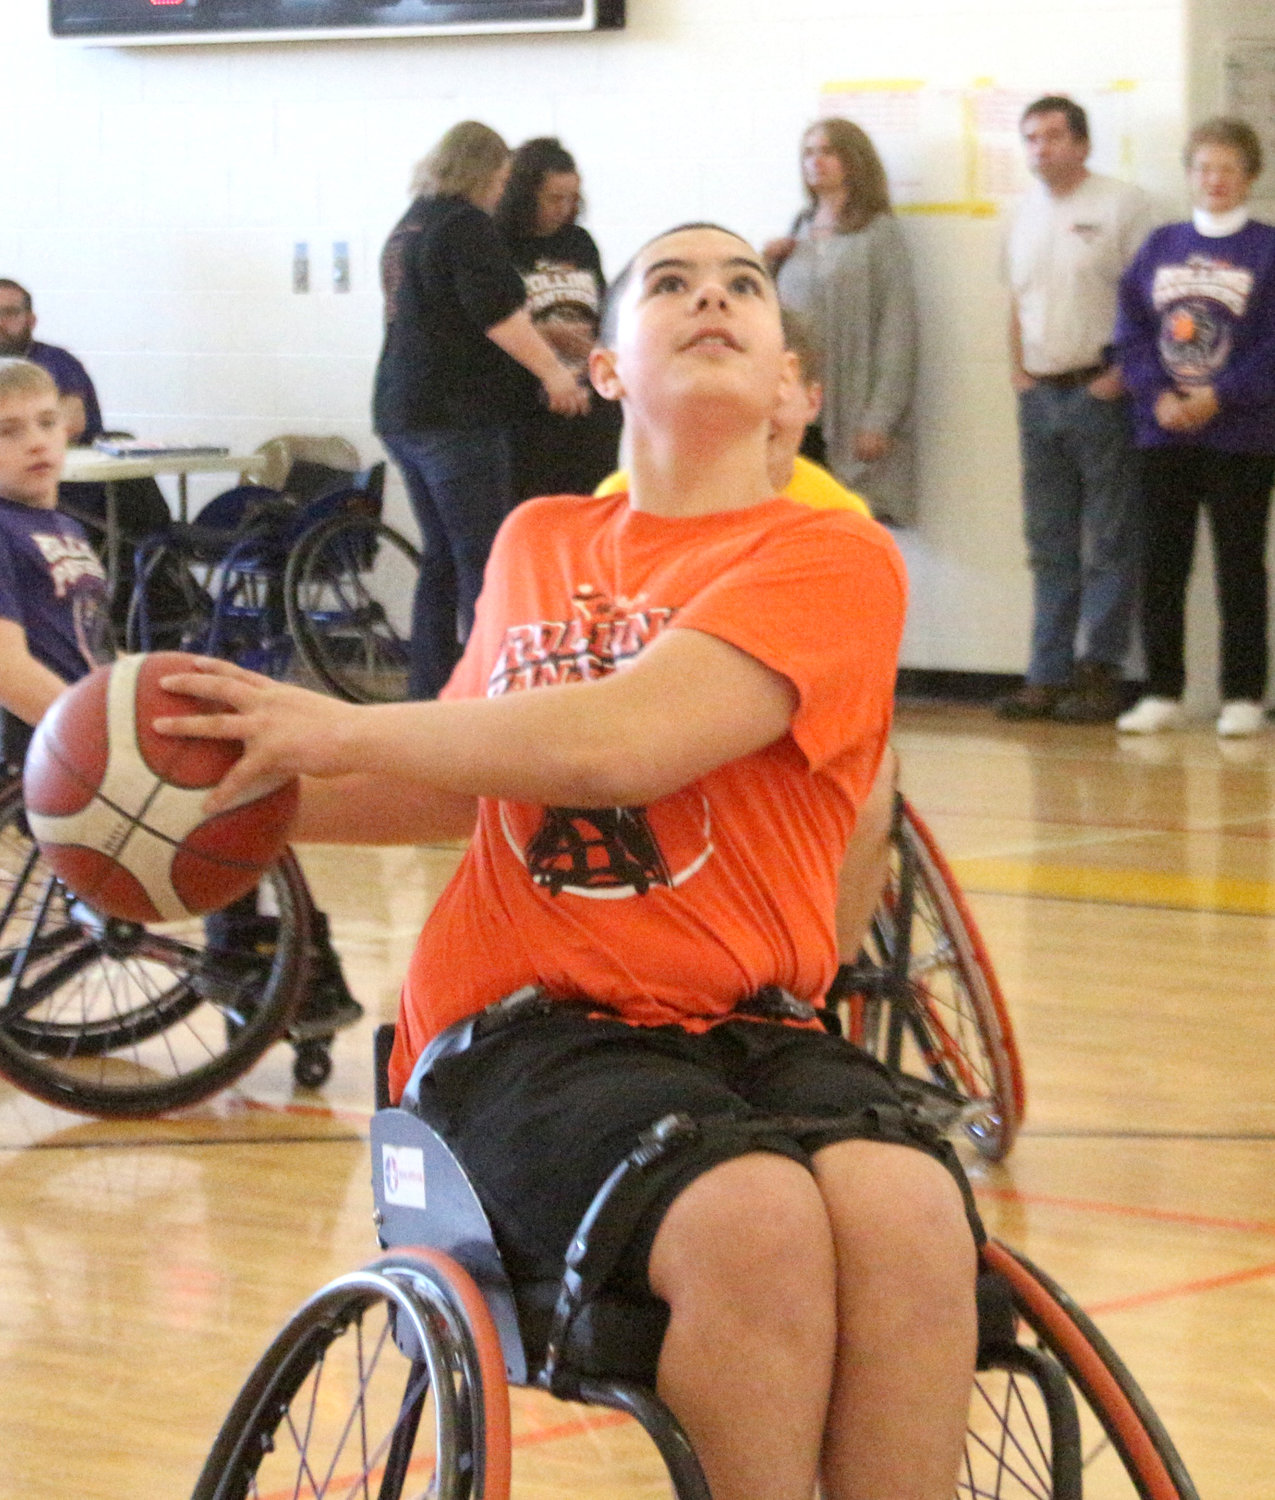 3-on-3 wheelchair basketball tournament fundraiser at Parkside Activities Center in Wellman on Saturday, March 7.